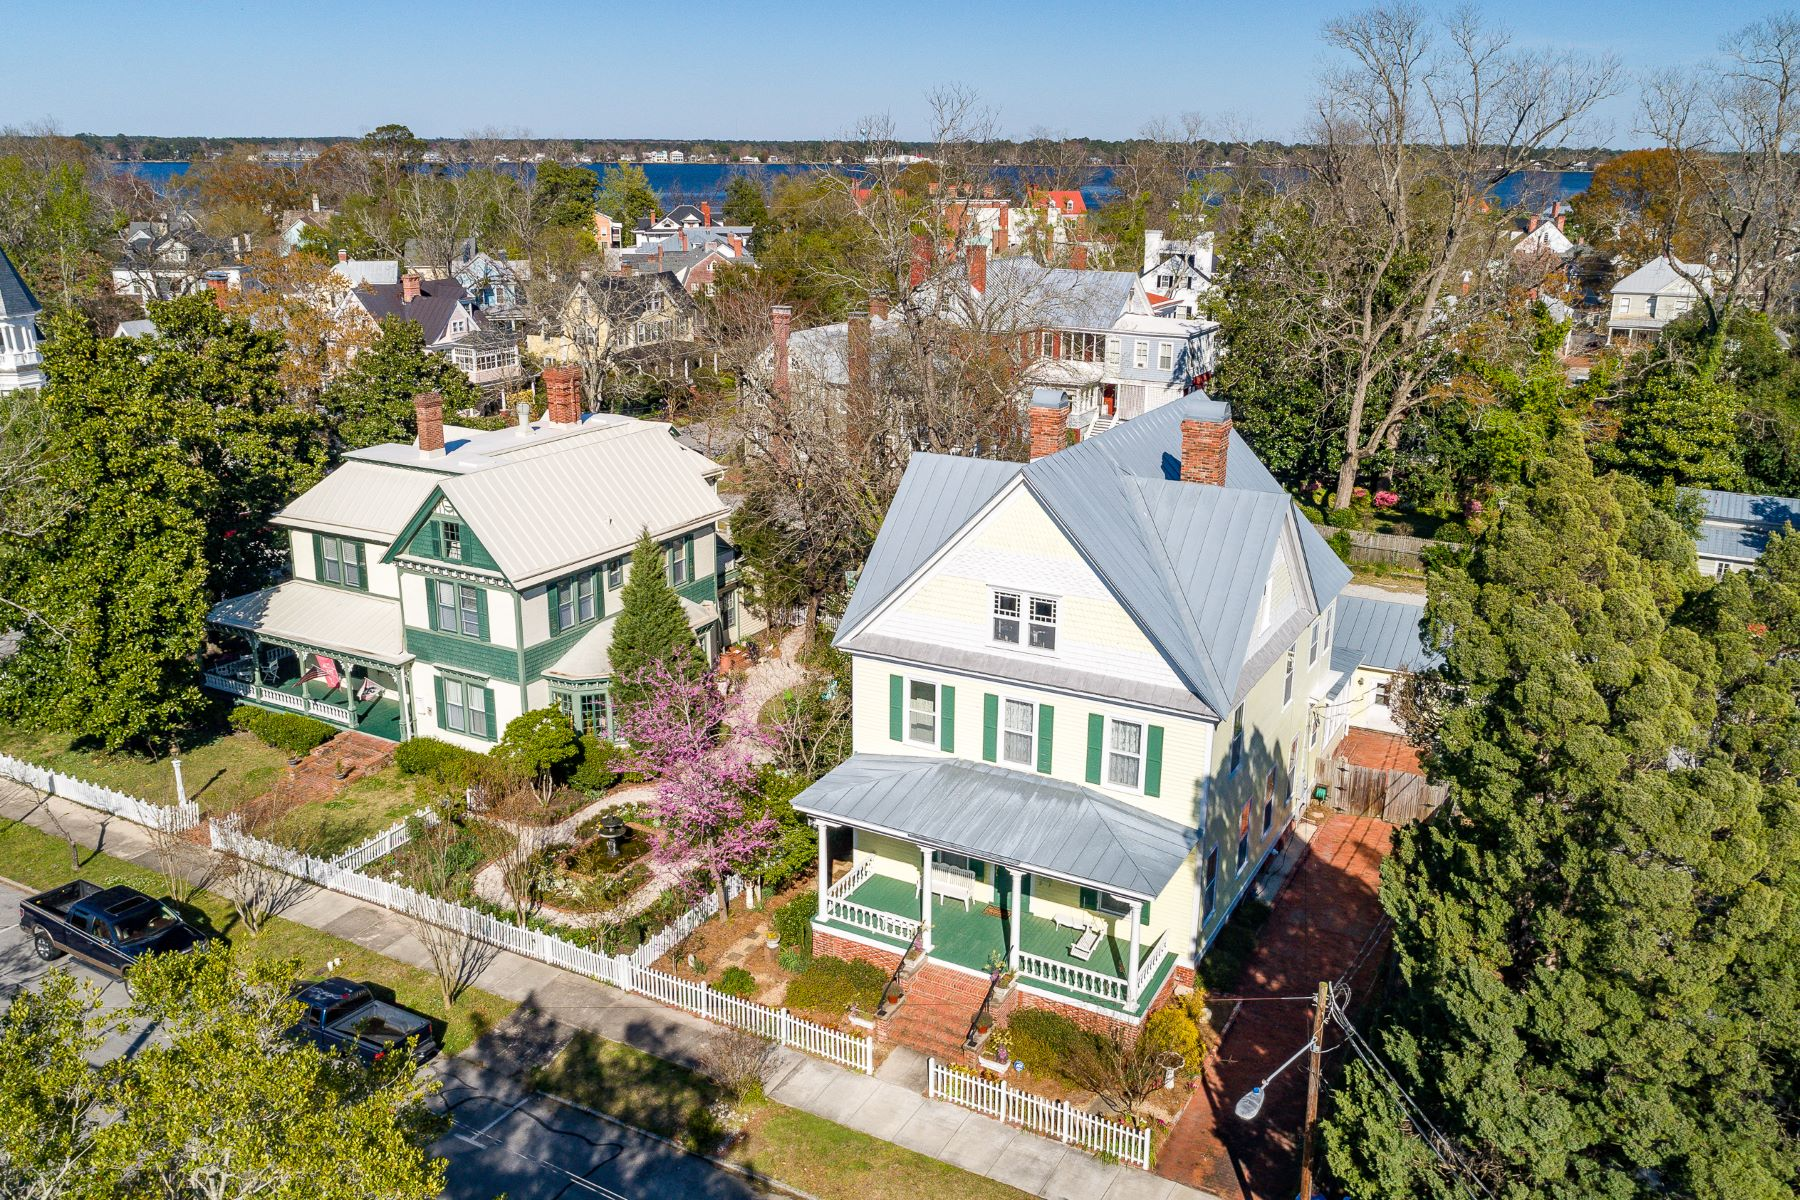 Single Family Homes for Active at Impeccable Victorian Home in Historic District 512 Middle St. New Bern, North Carolina 28560 United States